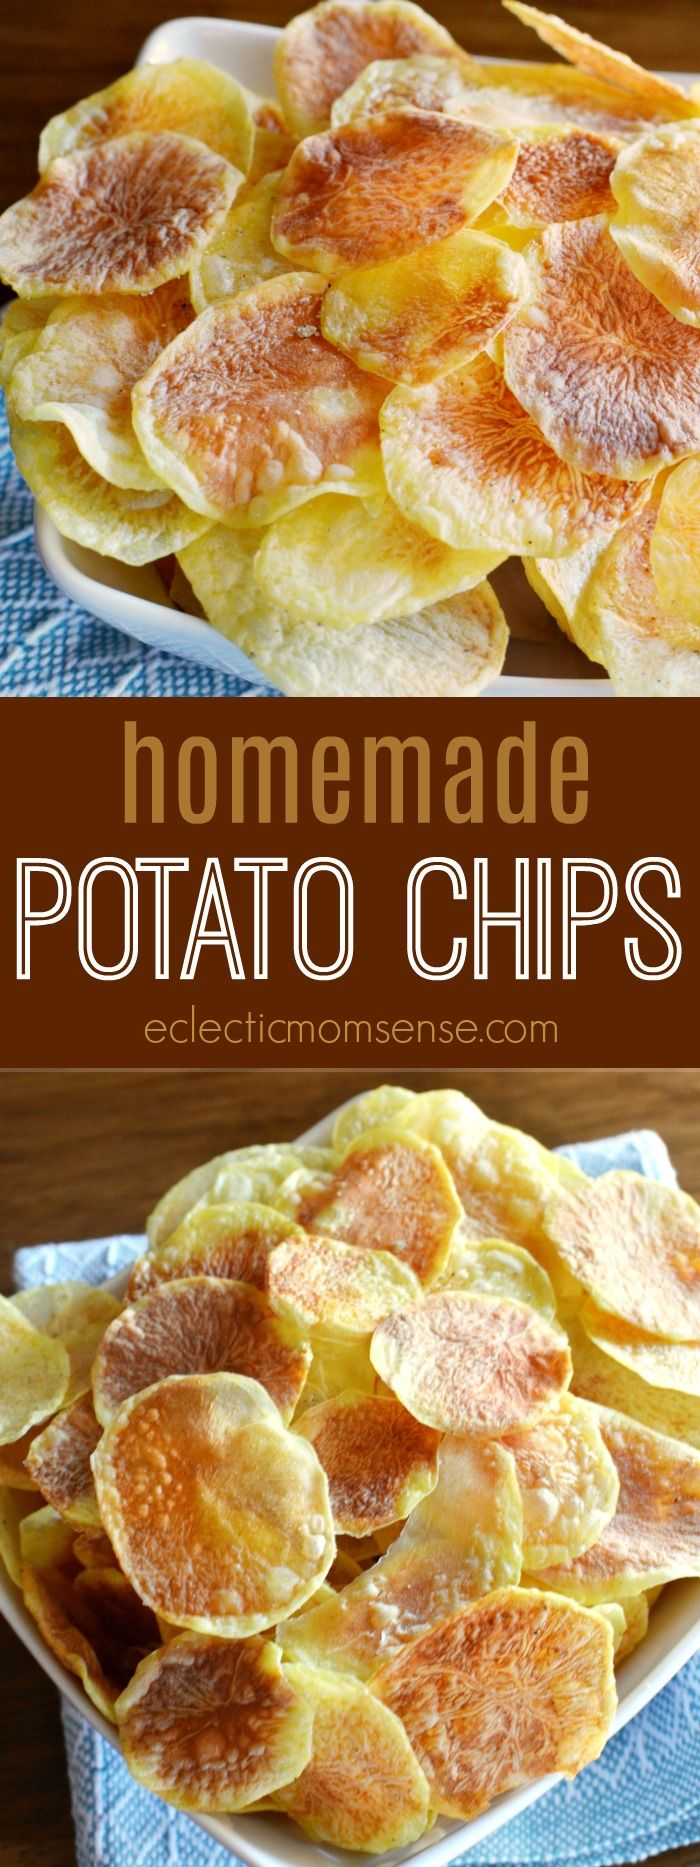 6 minutes to crisp homemade potato chips. No special tools required. #recipe